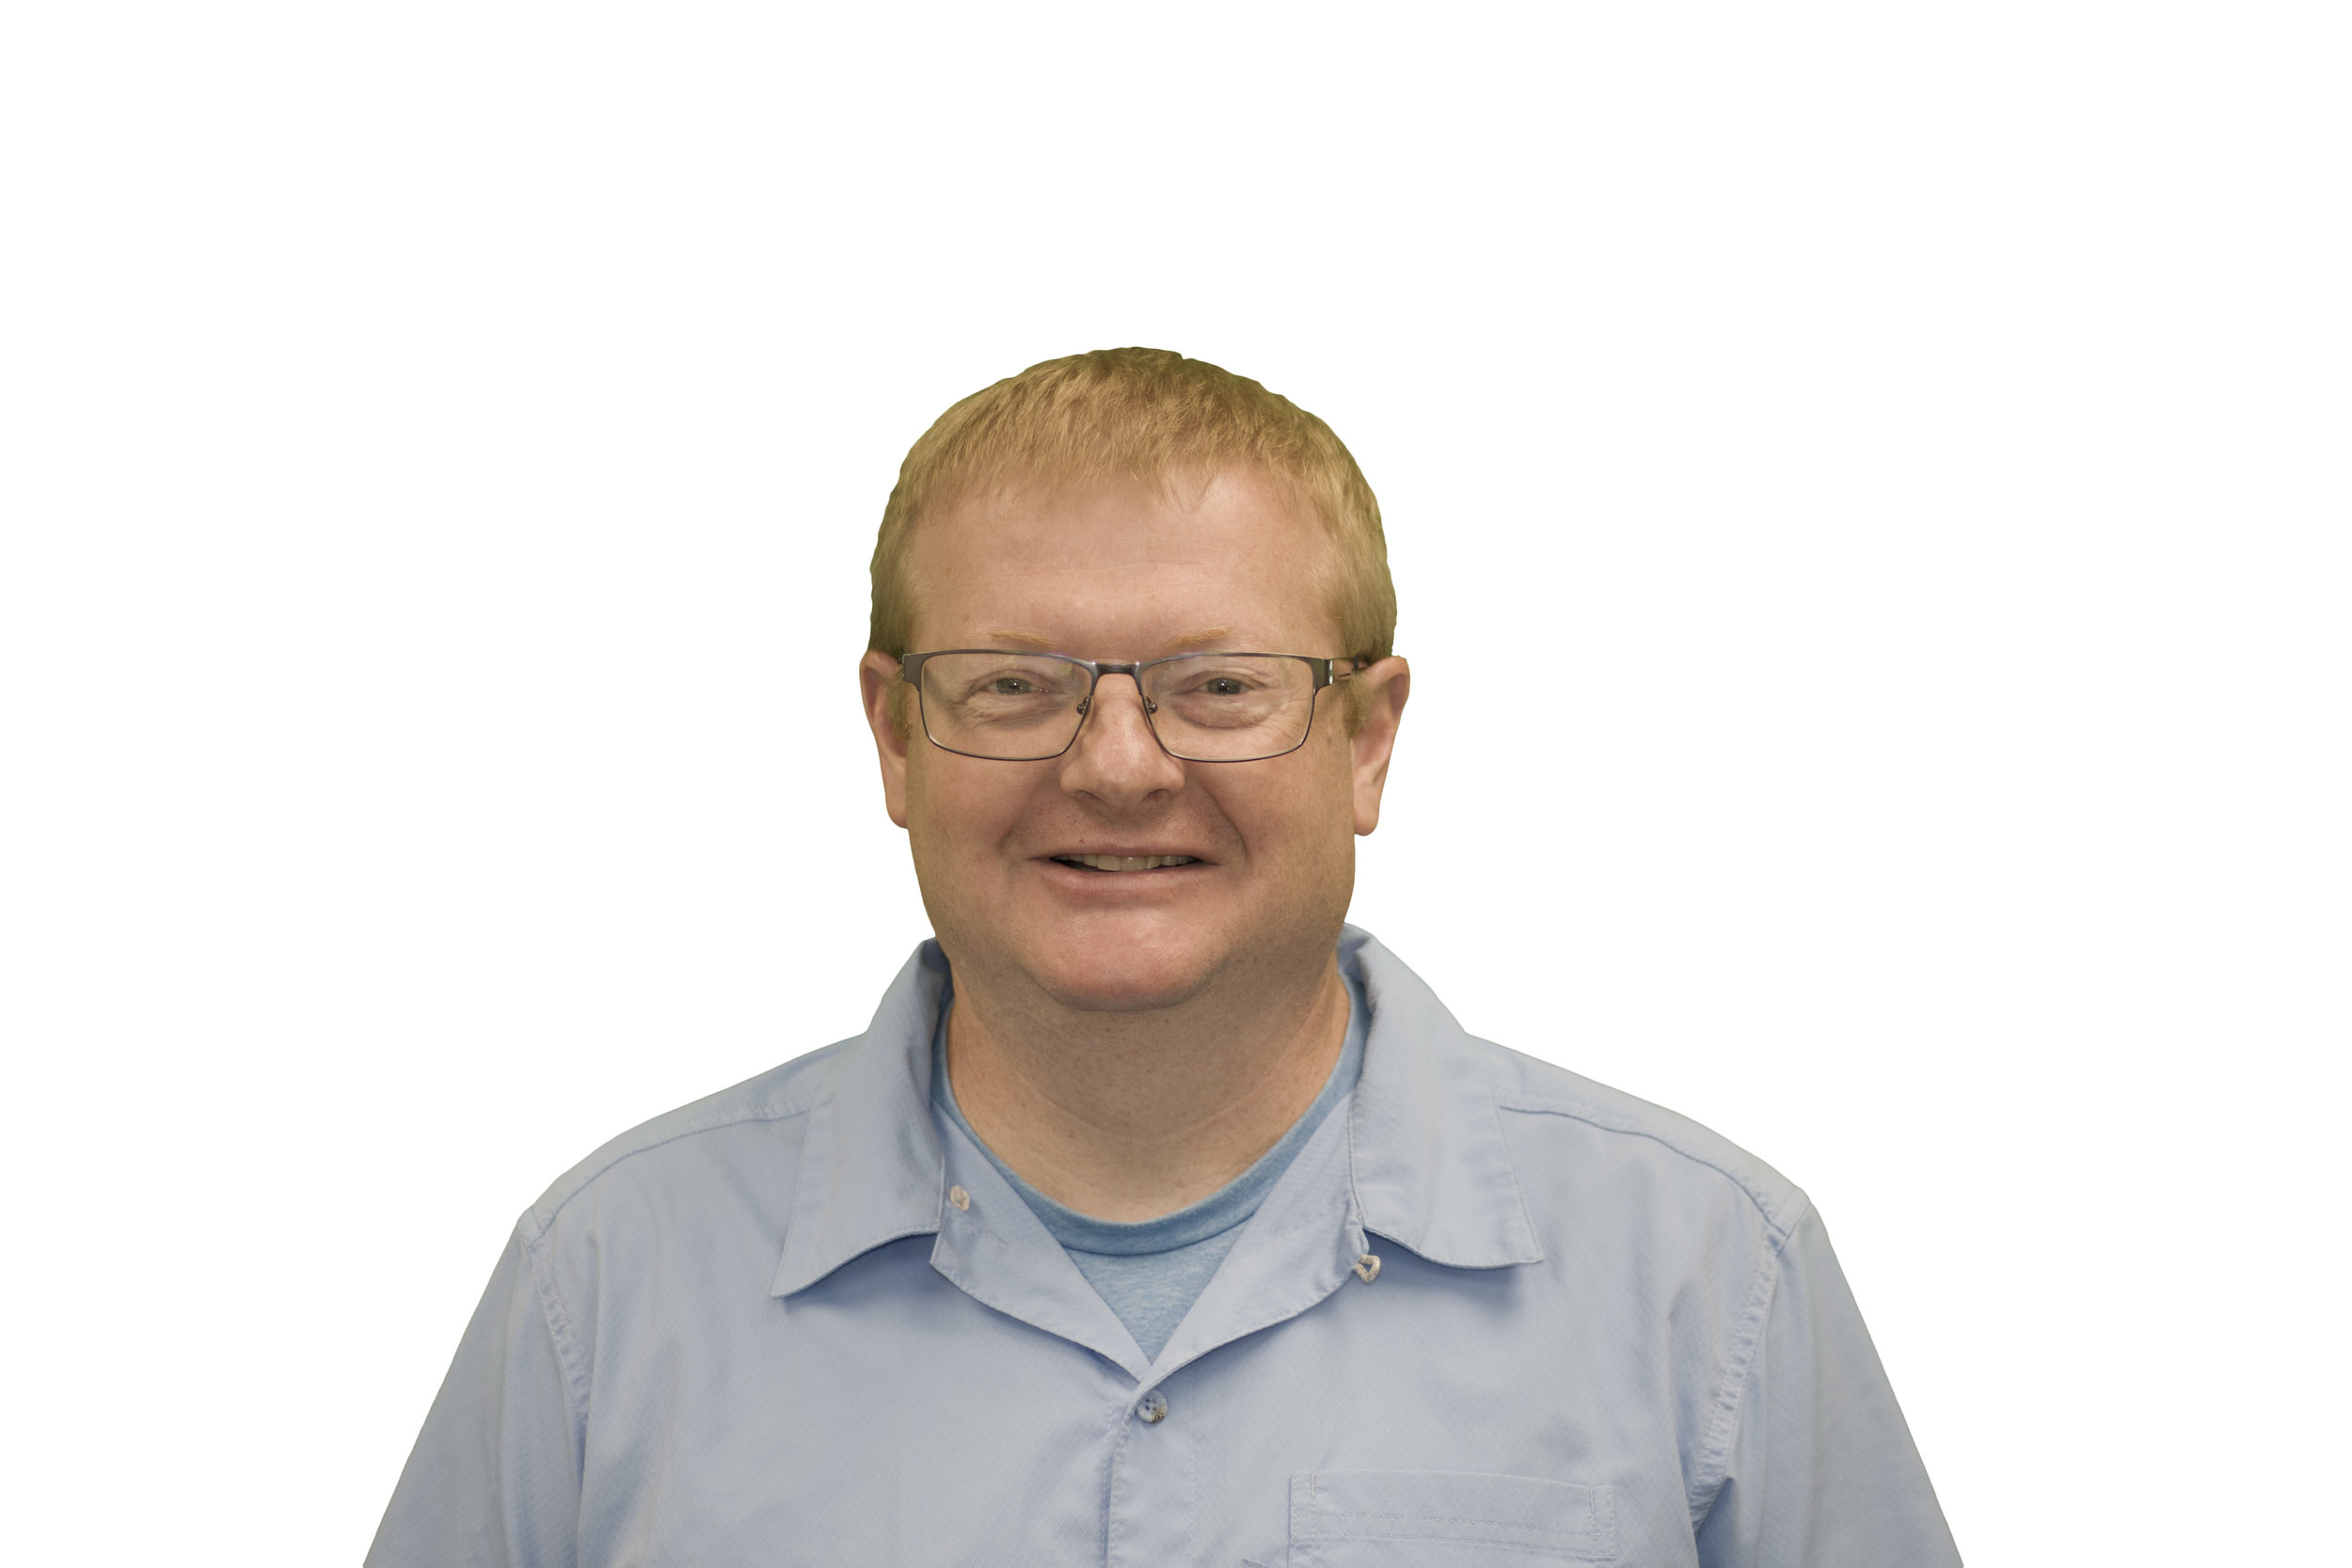 BEN HOLDEN - Ben is an Associate and Environmental Engineer with GBMc & Associates. His focus is in clean air act permitting and compliance. Ben is experienced in developing air permit applications, PSD applicably, air dispersion modeling, and NSPS and MACT applicability and reporting.